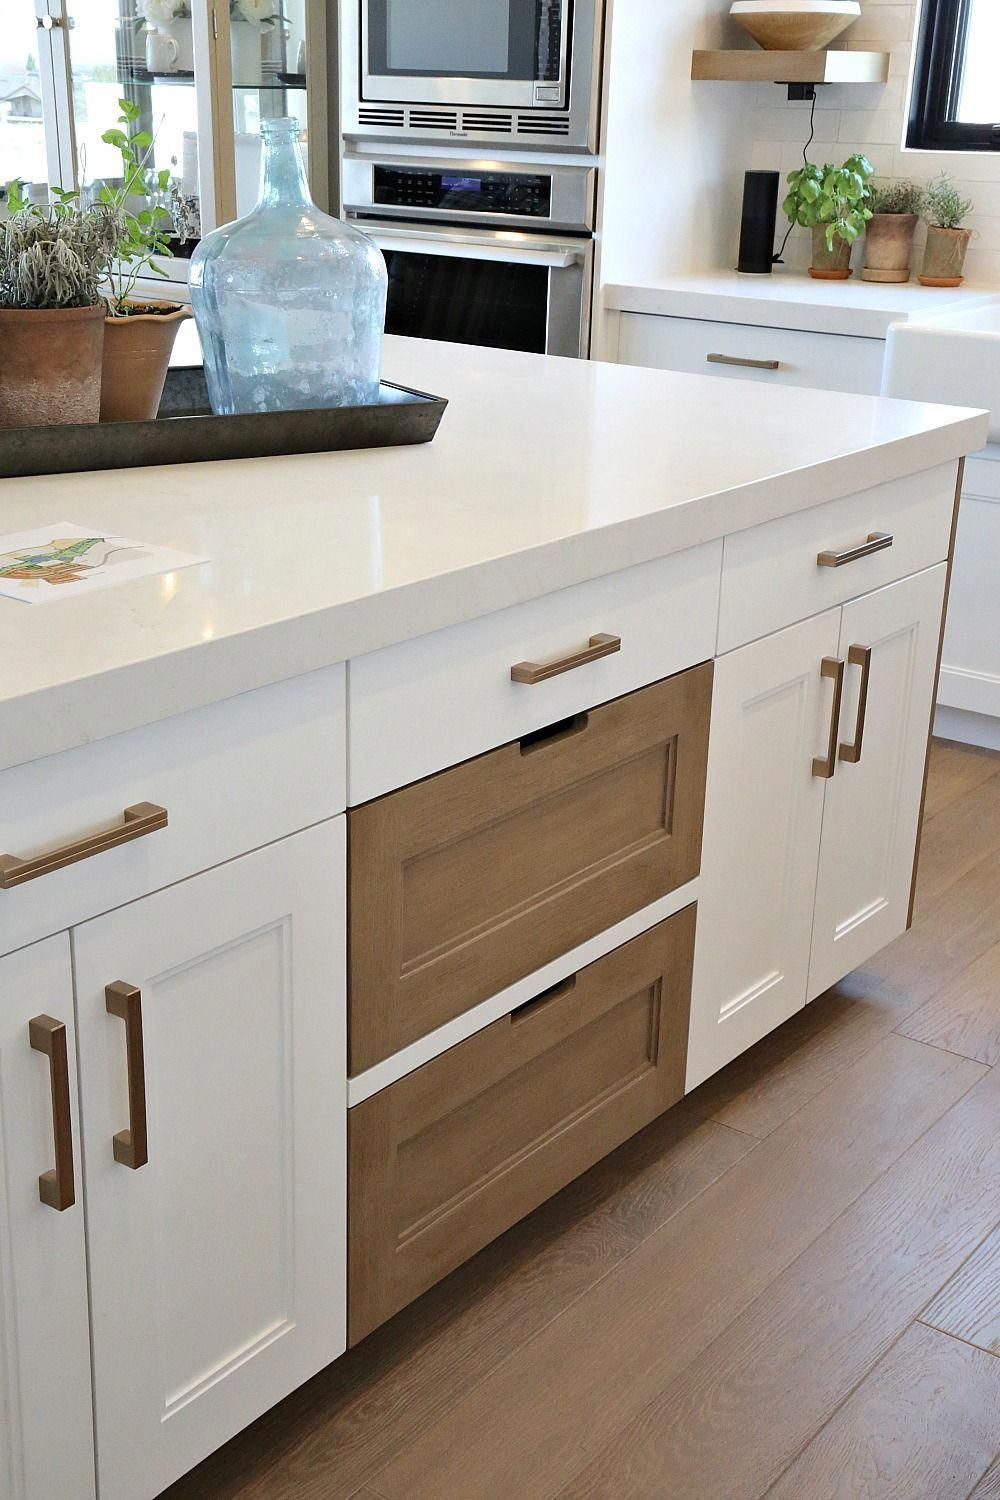 Dress Up Your Kitchen Furniture With A Small Budget Stained Kitchen Cabinets Staining Cabinets New Kitchen Cabinets